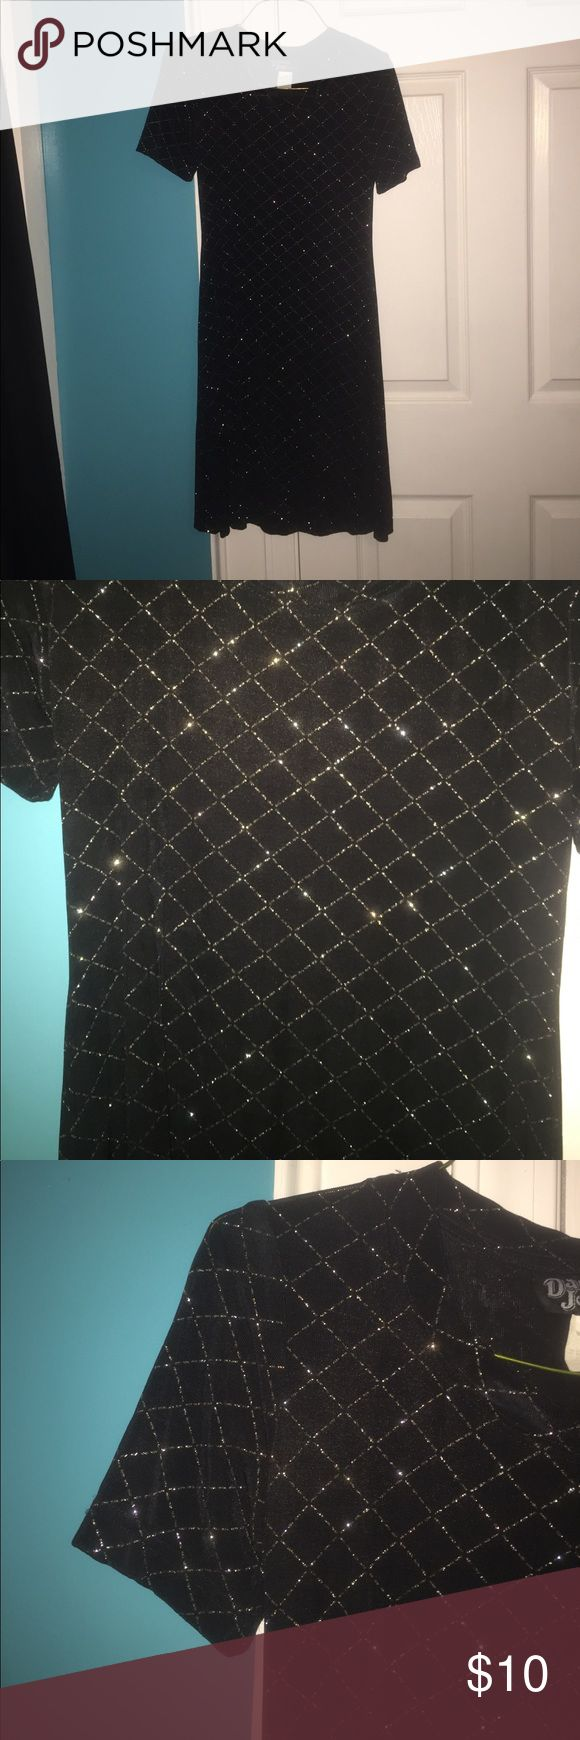 Black dress Sparkly pattern. Padded shoulders. Soft. dawn joy fashions Dresses Formal